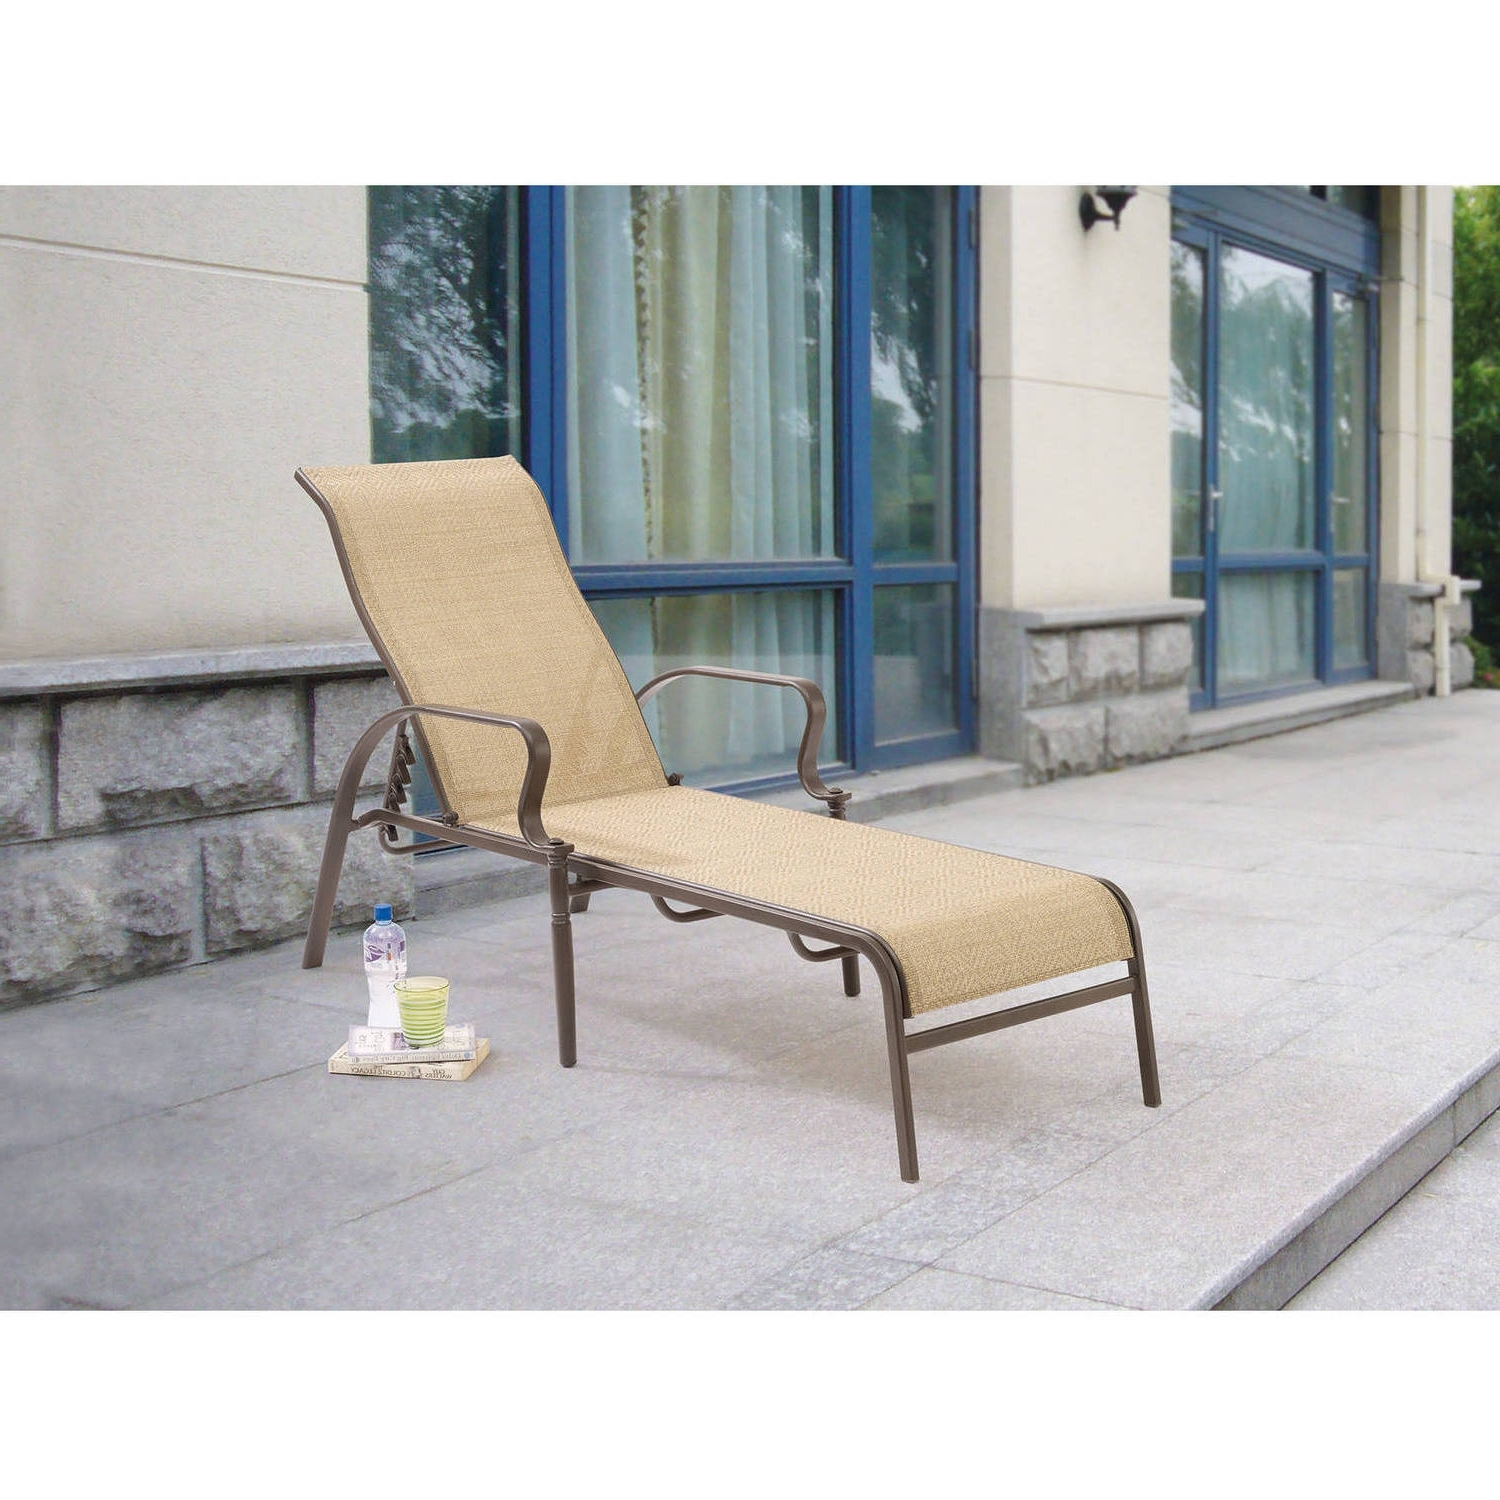 Popular Mainstays Wesley Creek Sling Outdoor Chaise Lounge – Walmart With Regard To Walmart Chaise Lounge Chairs (View 11 of 15)